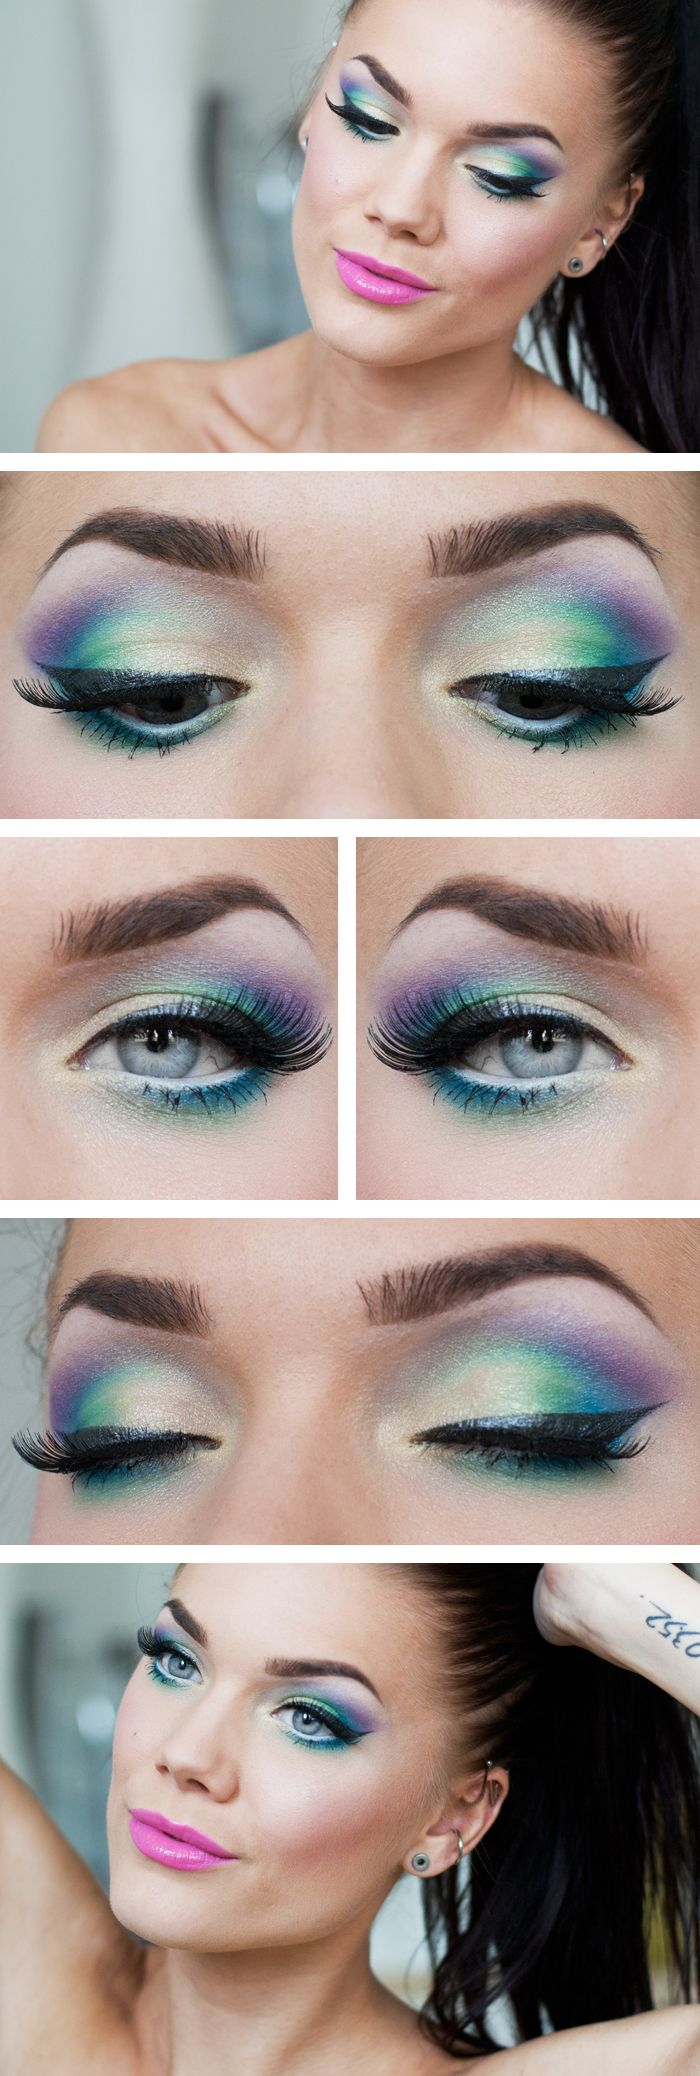 """Today's Look : """"Like a Rainbow"""" -Linda Hallberg ( the name says it all... a magnificent array of colors! from nudes/yellows? to greens, to blues, to purples. A gorgeous eye paired with the perfect pop of pink on the lips with MAC lipstick in Silly"""